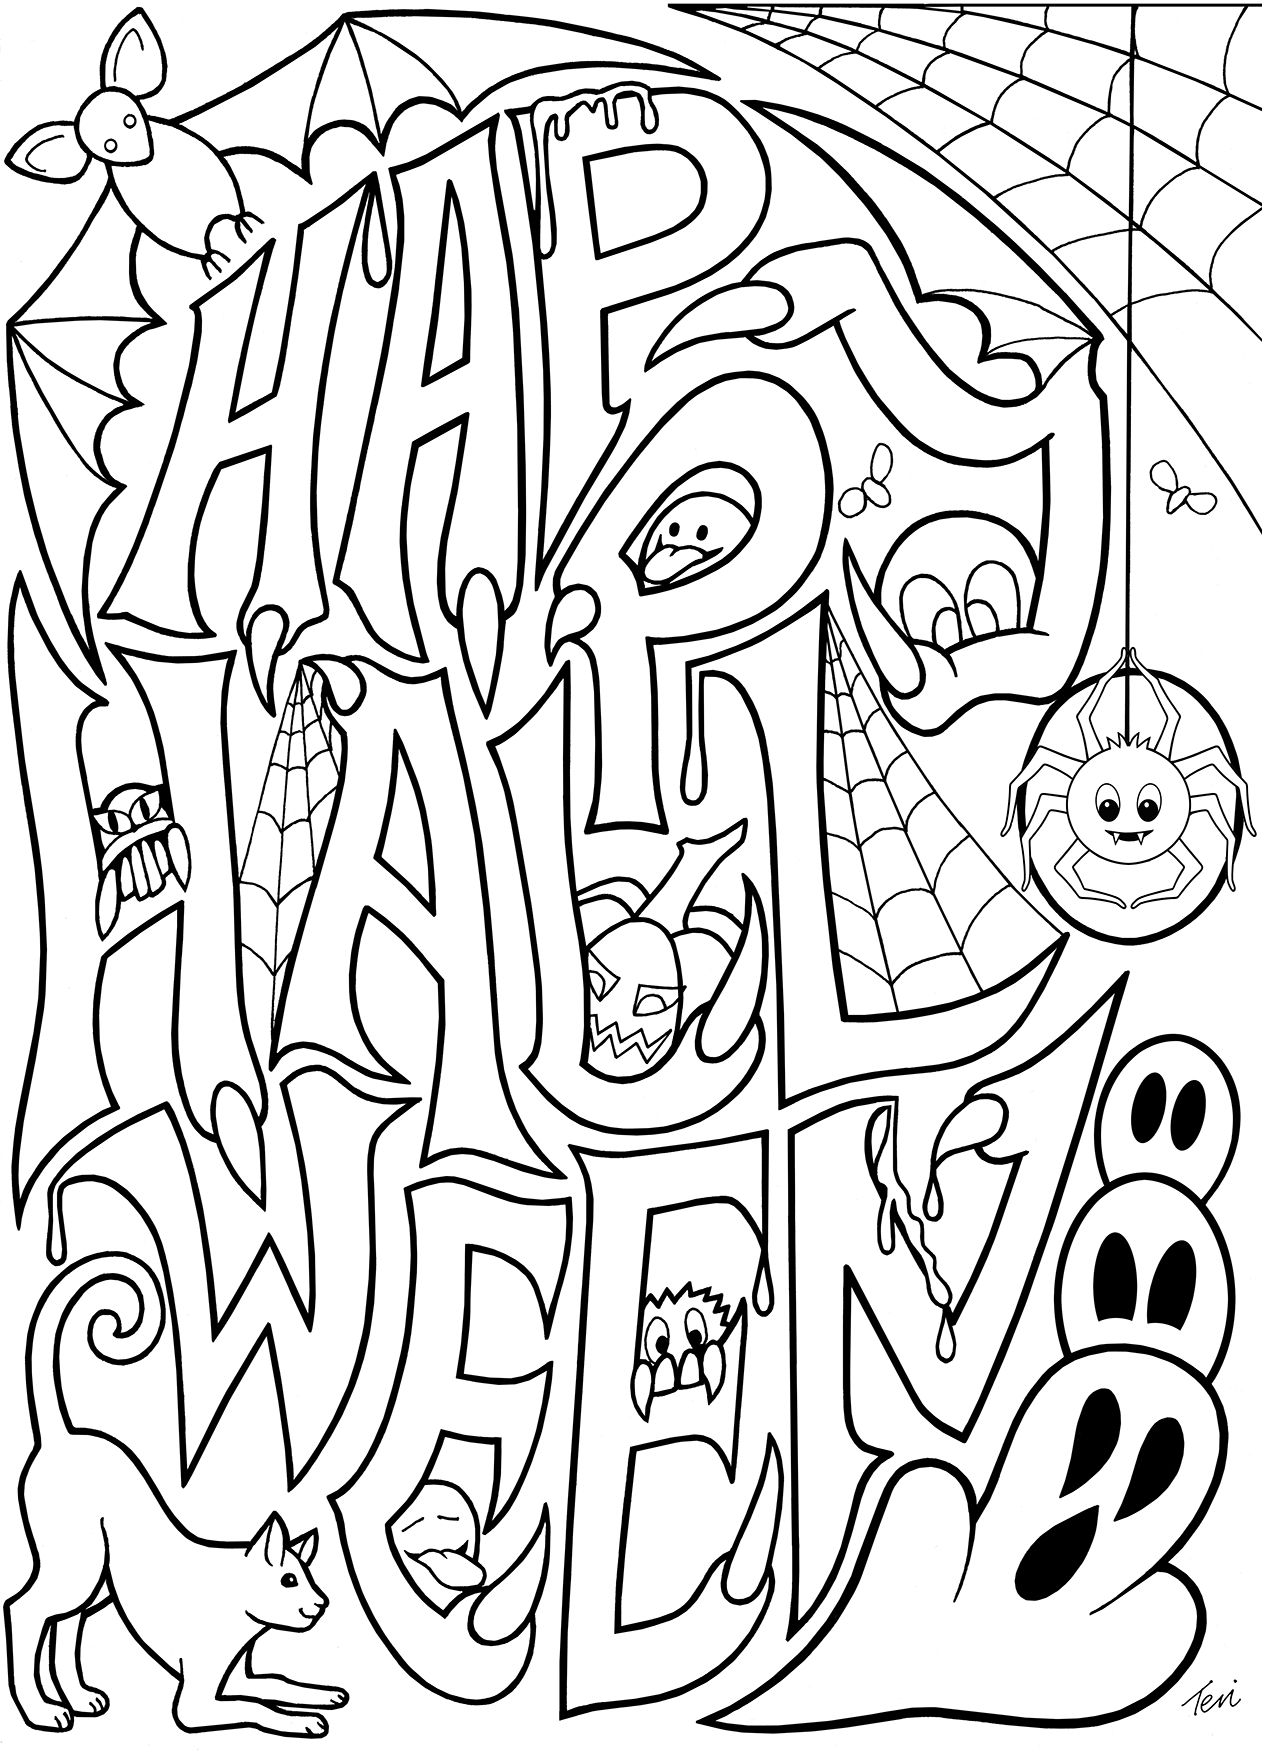 coloring halloween activities halloween coloring pages 10 free spooky printable activities halloween coloring